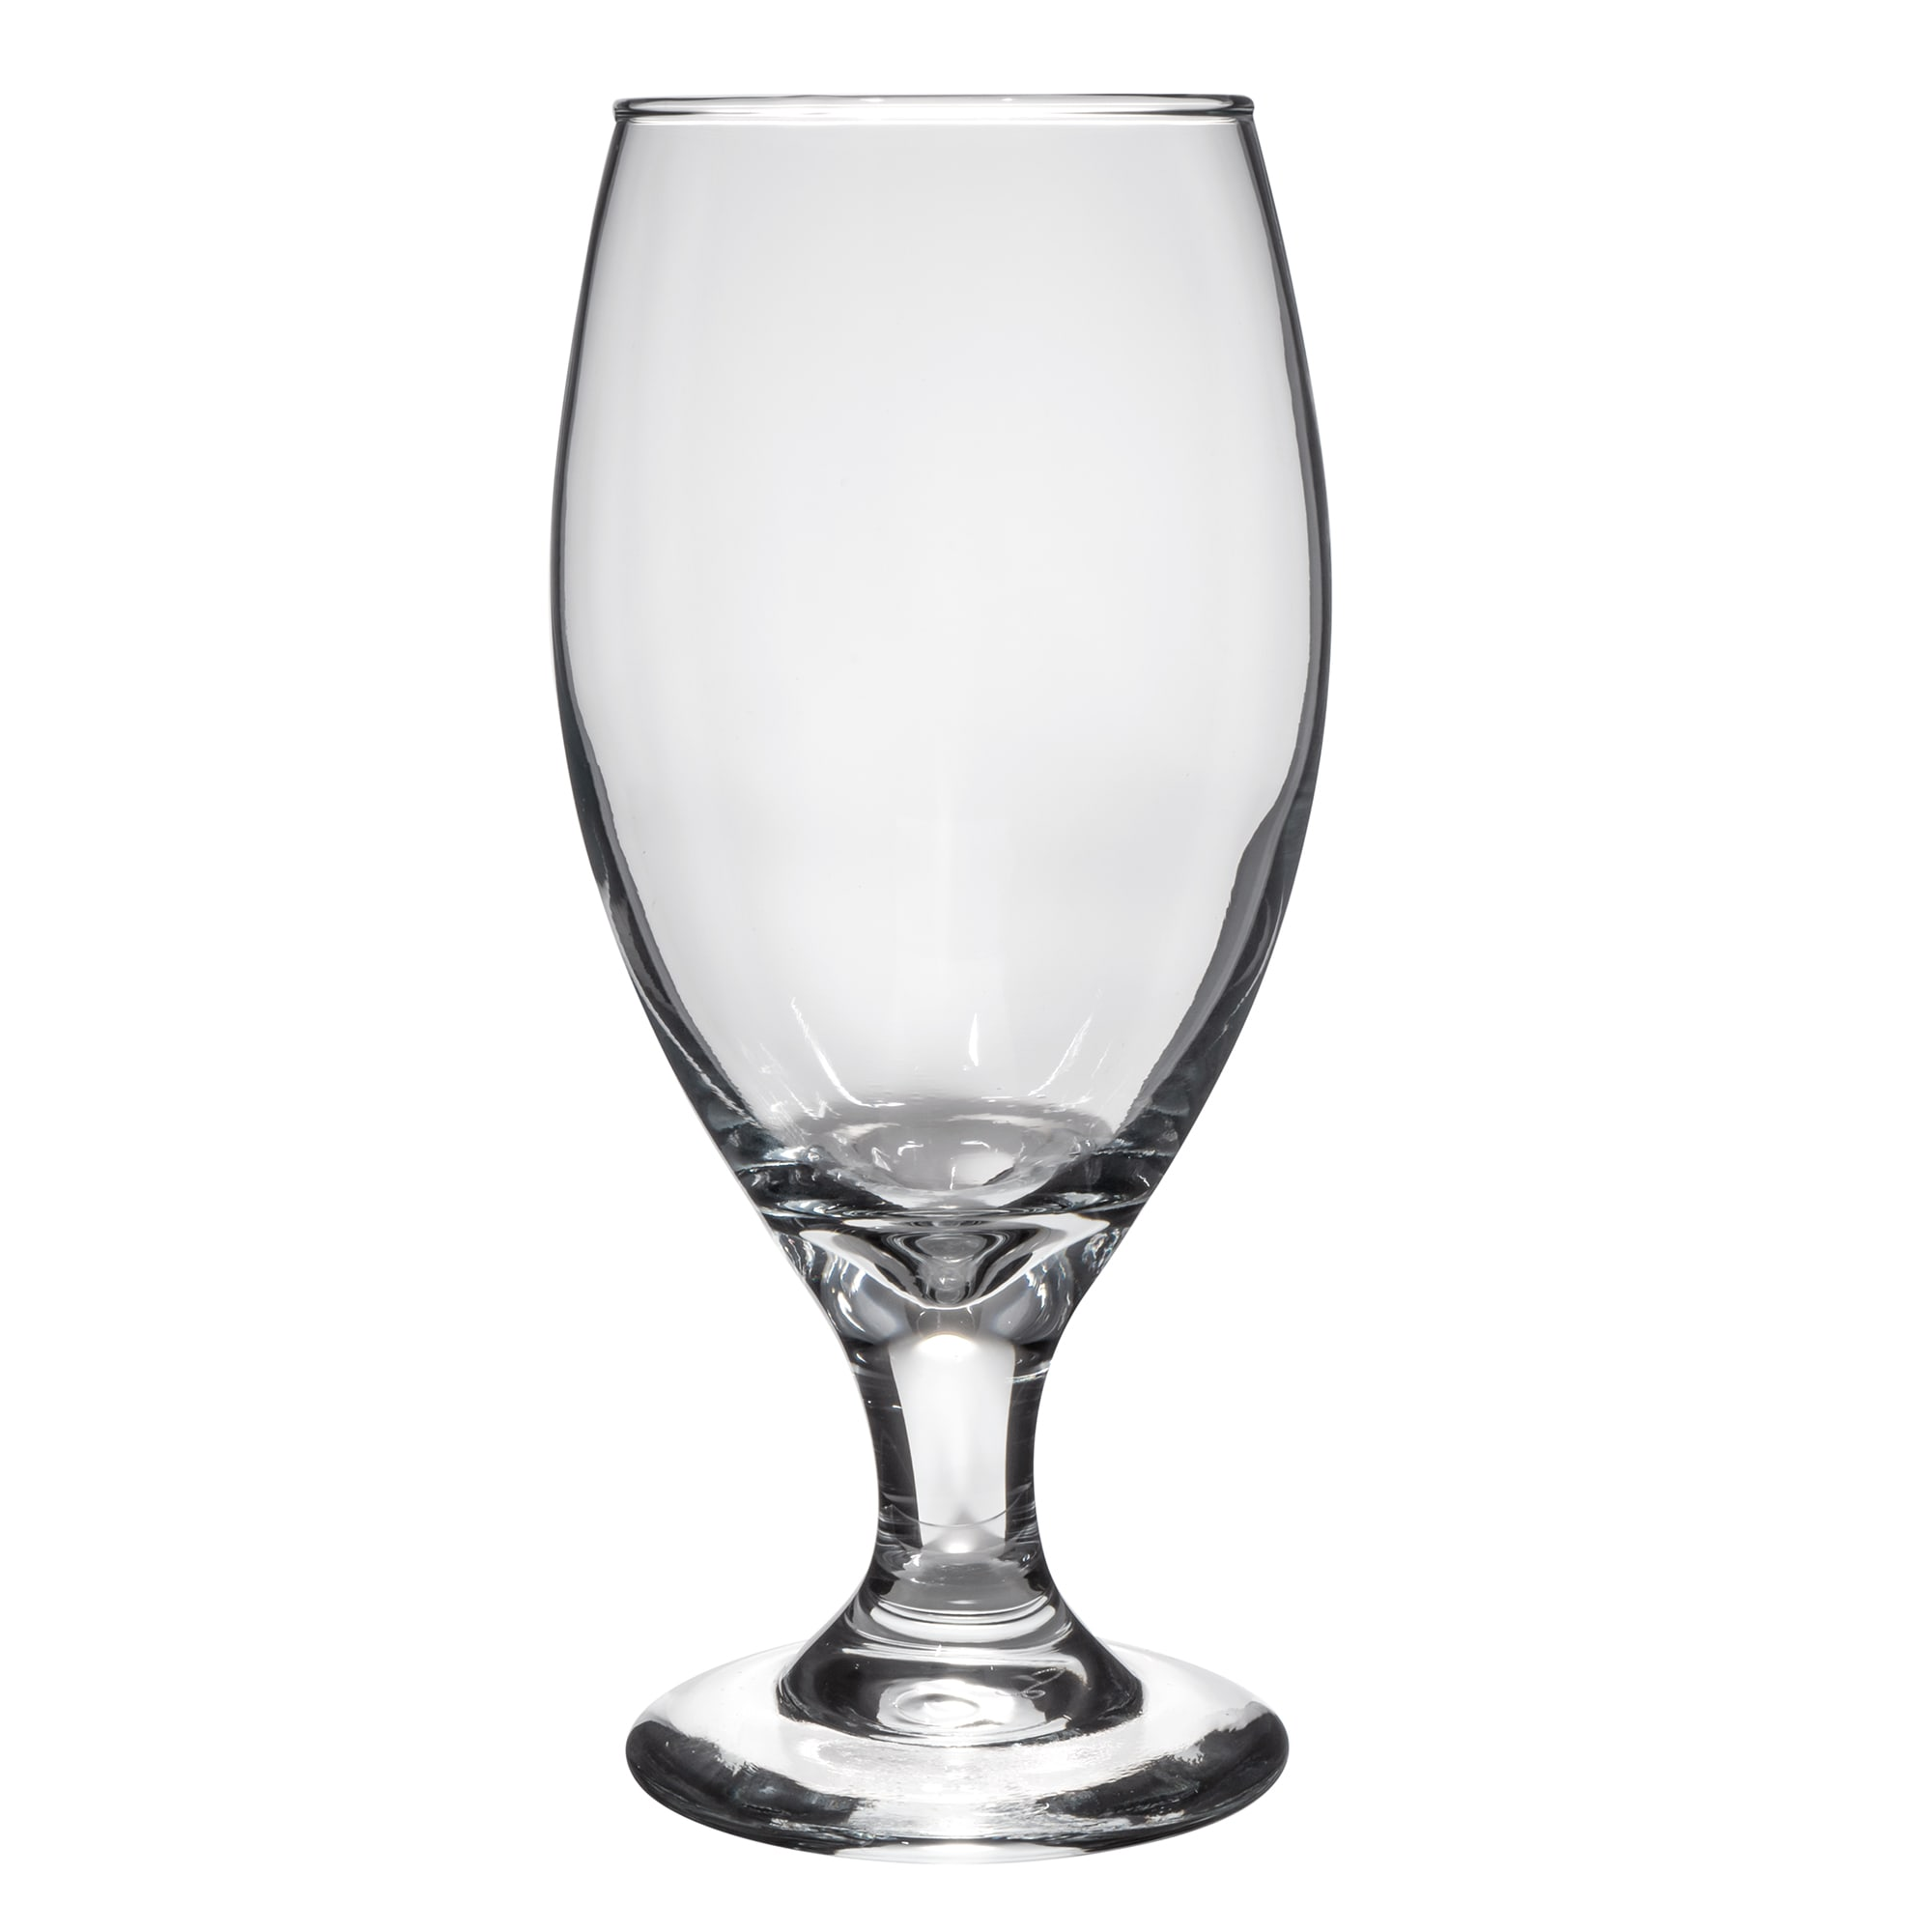 Libbey 3915 14.75-oz Teardrop Beer Glass - Safedge Rim & Foot Guarantee